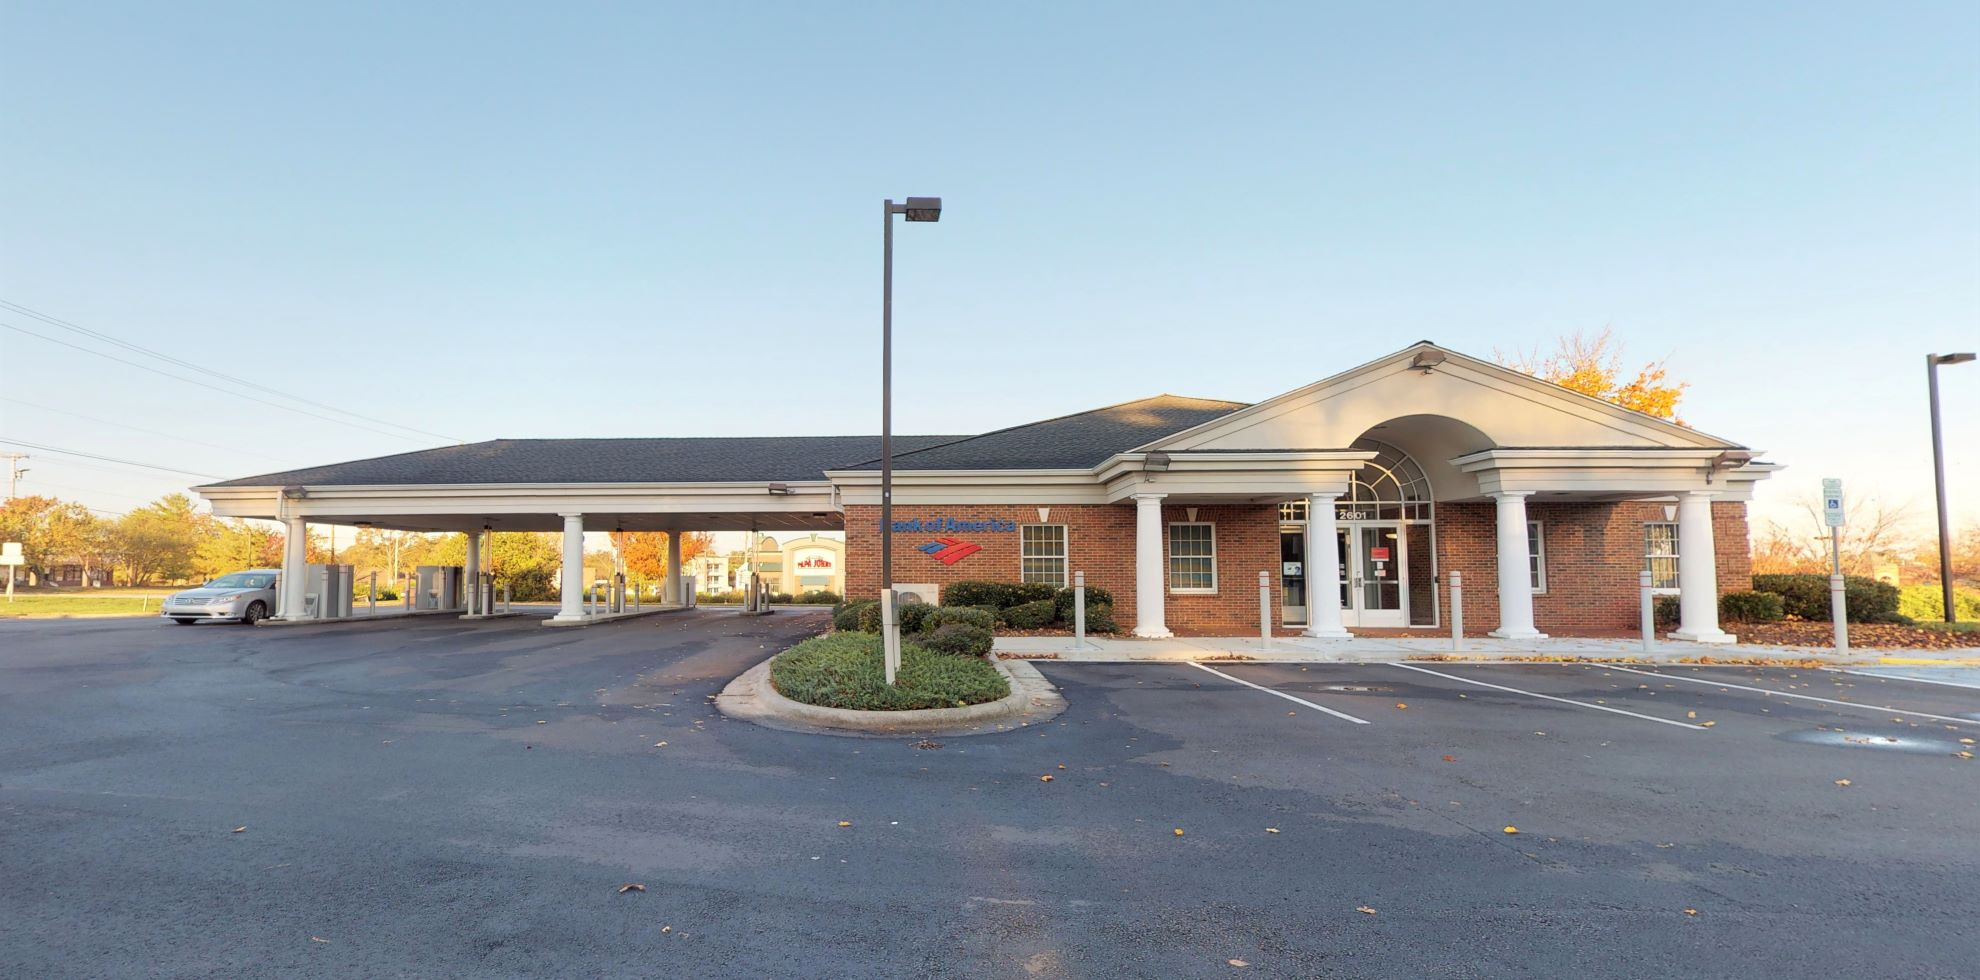 Bank of America financial center with drive-thru ATM | 2601 Eastchester Dr, High Point, NC 27265